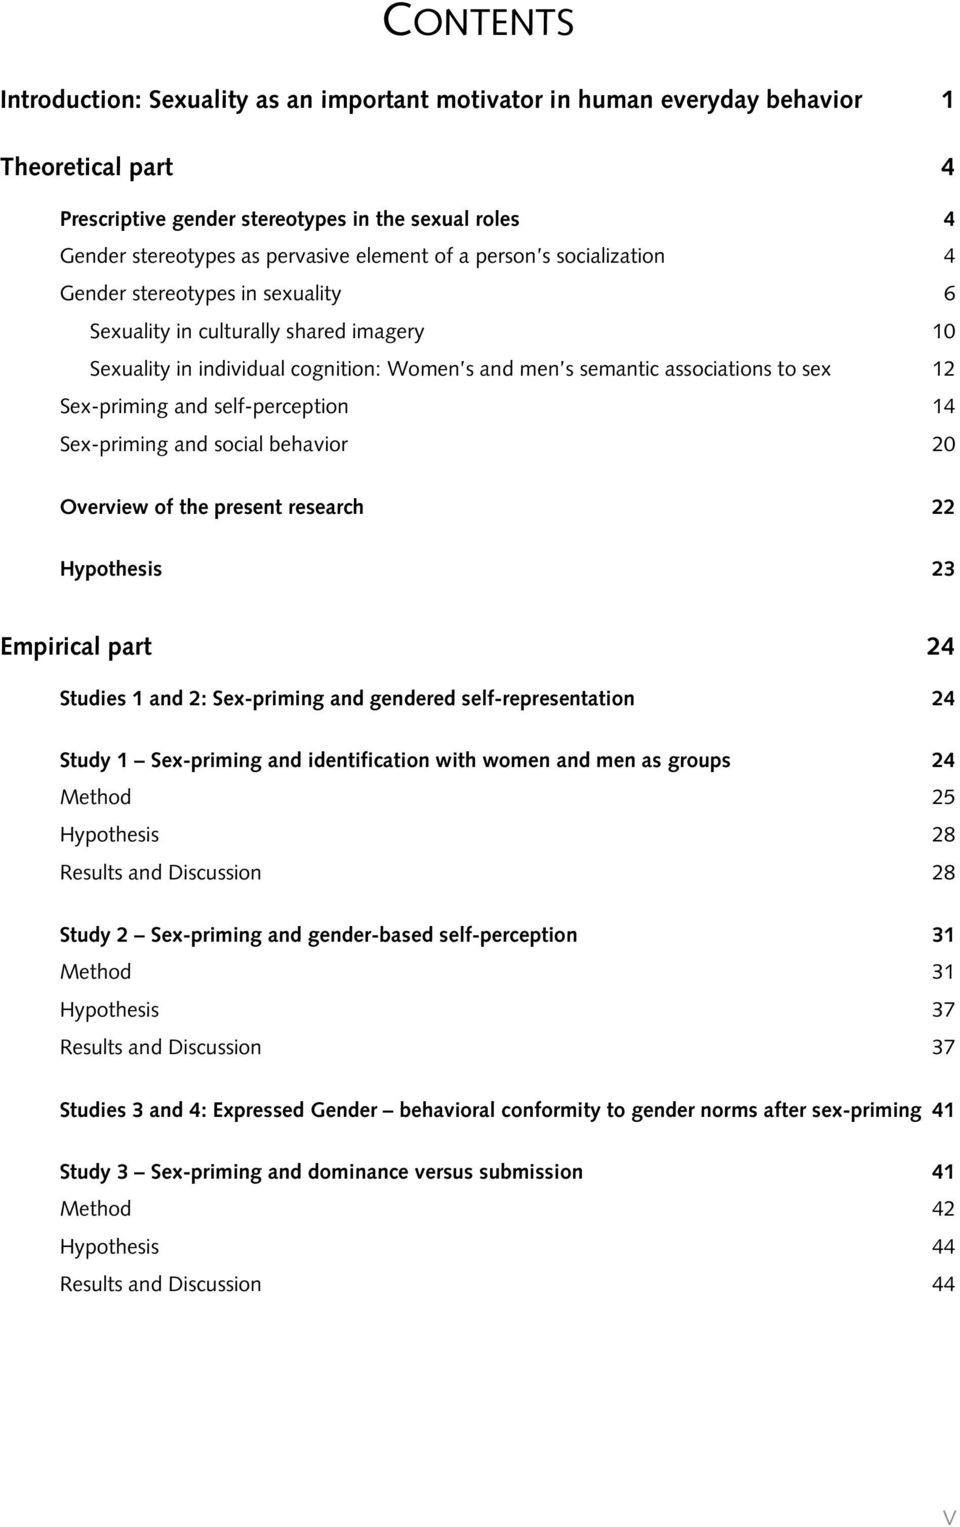 Sex-priming and self-perception 14 Sex-priming and social behavior 20 Overview of the present research 22 Hypothesis 23 Empirical part 24 Studies 1 and 2: Sex-priming and gendered self-representation